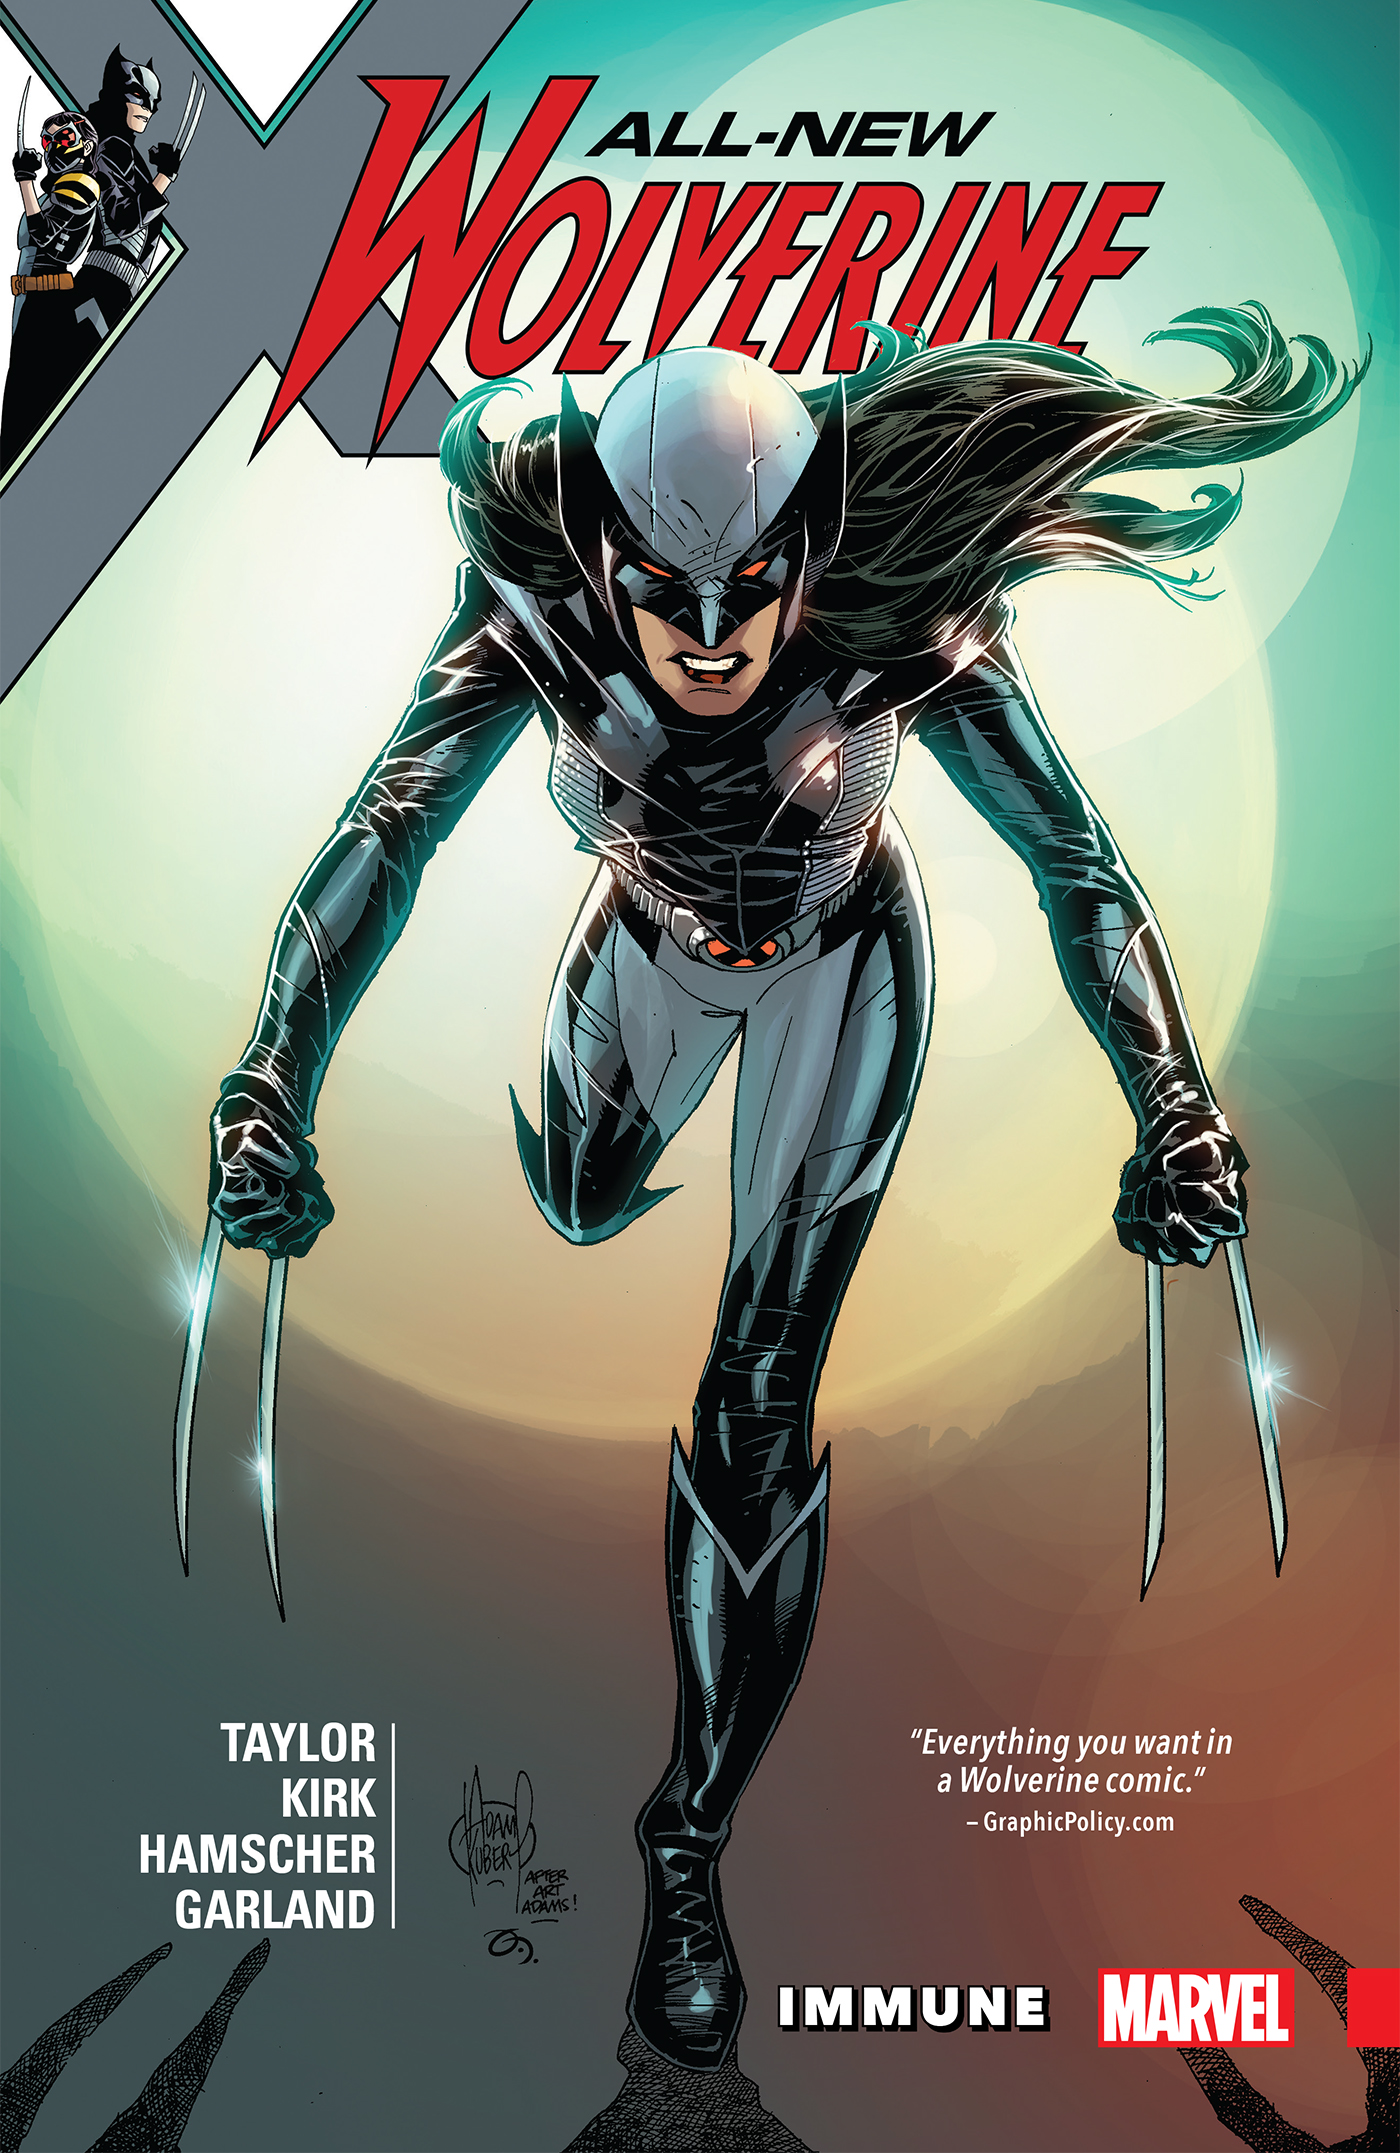 All-New Wolverine Vol. 4: Immune [electronic resource]